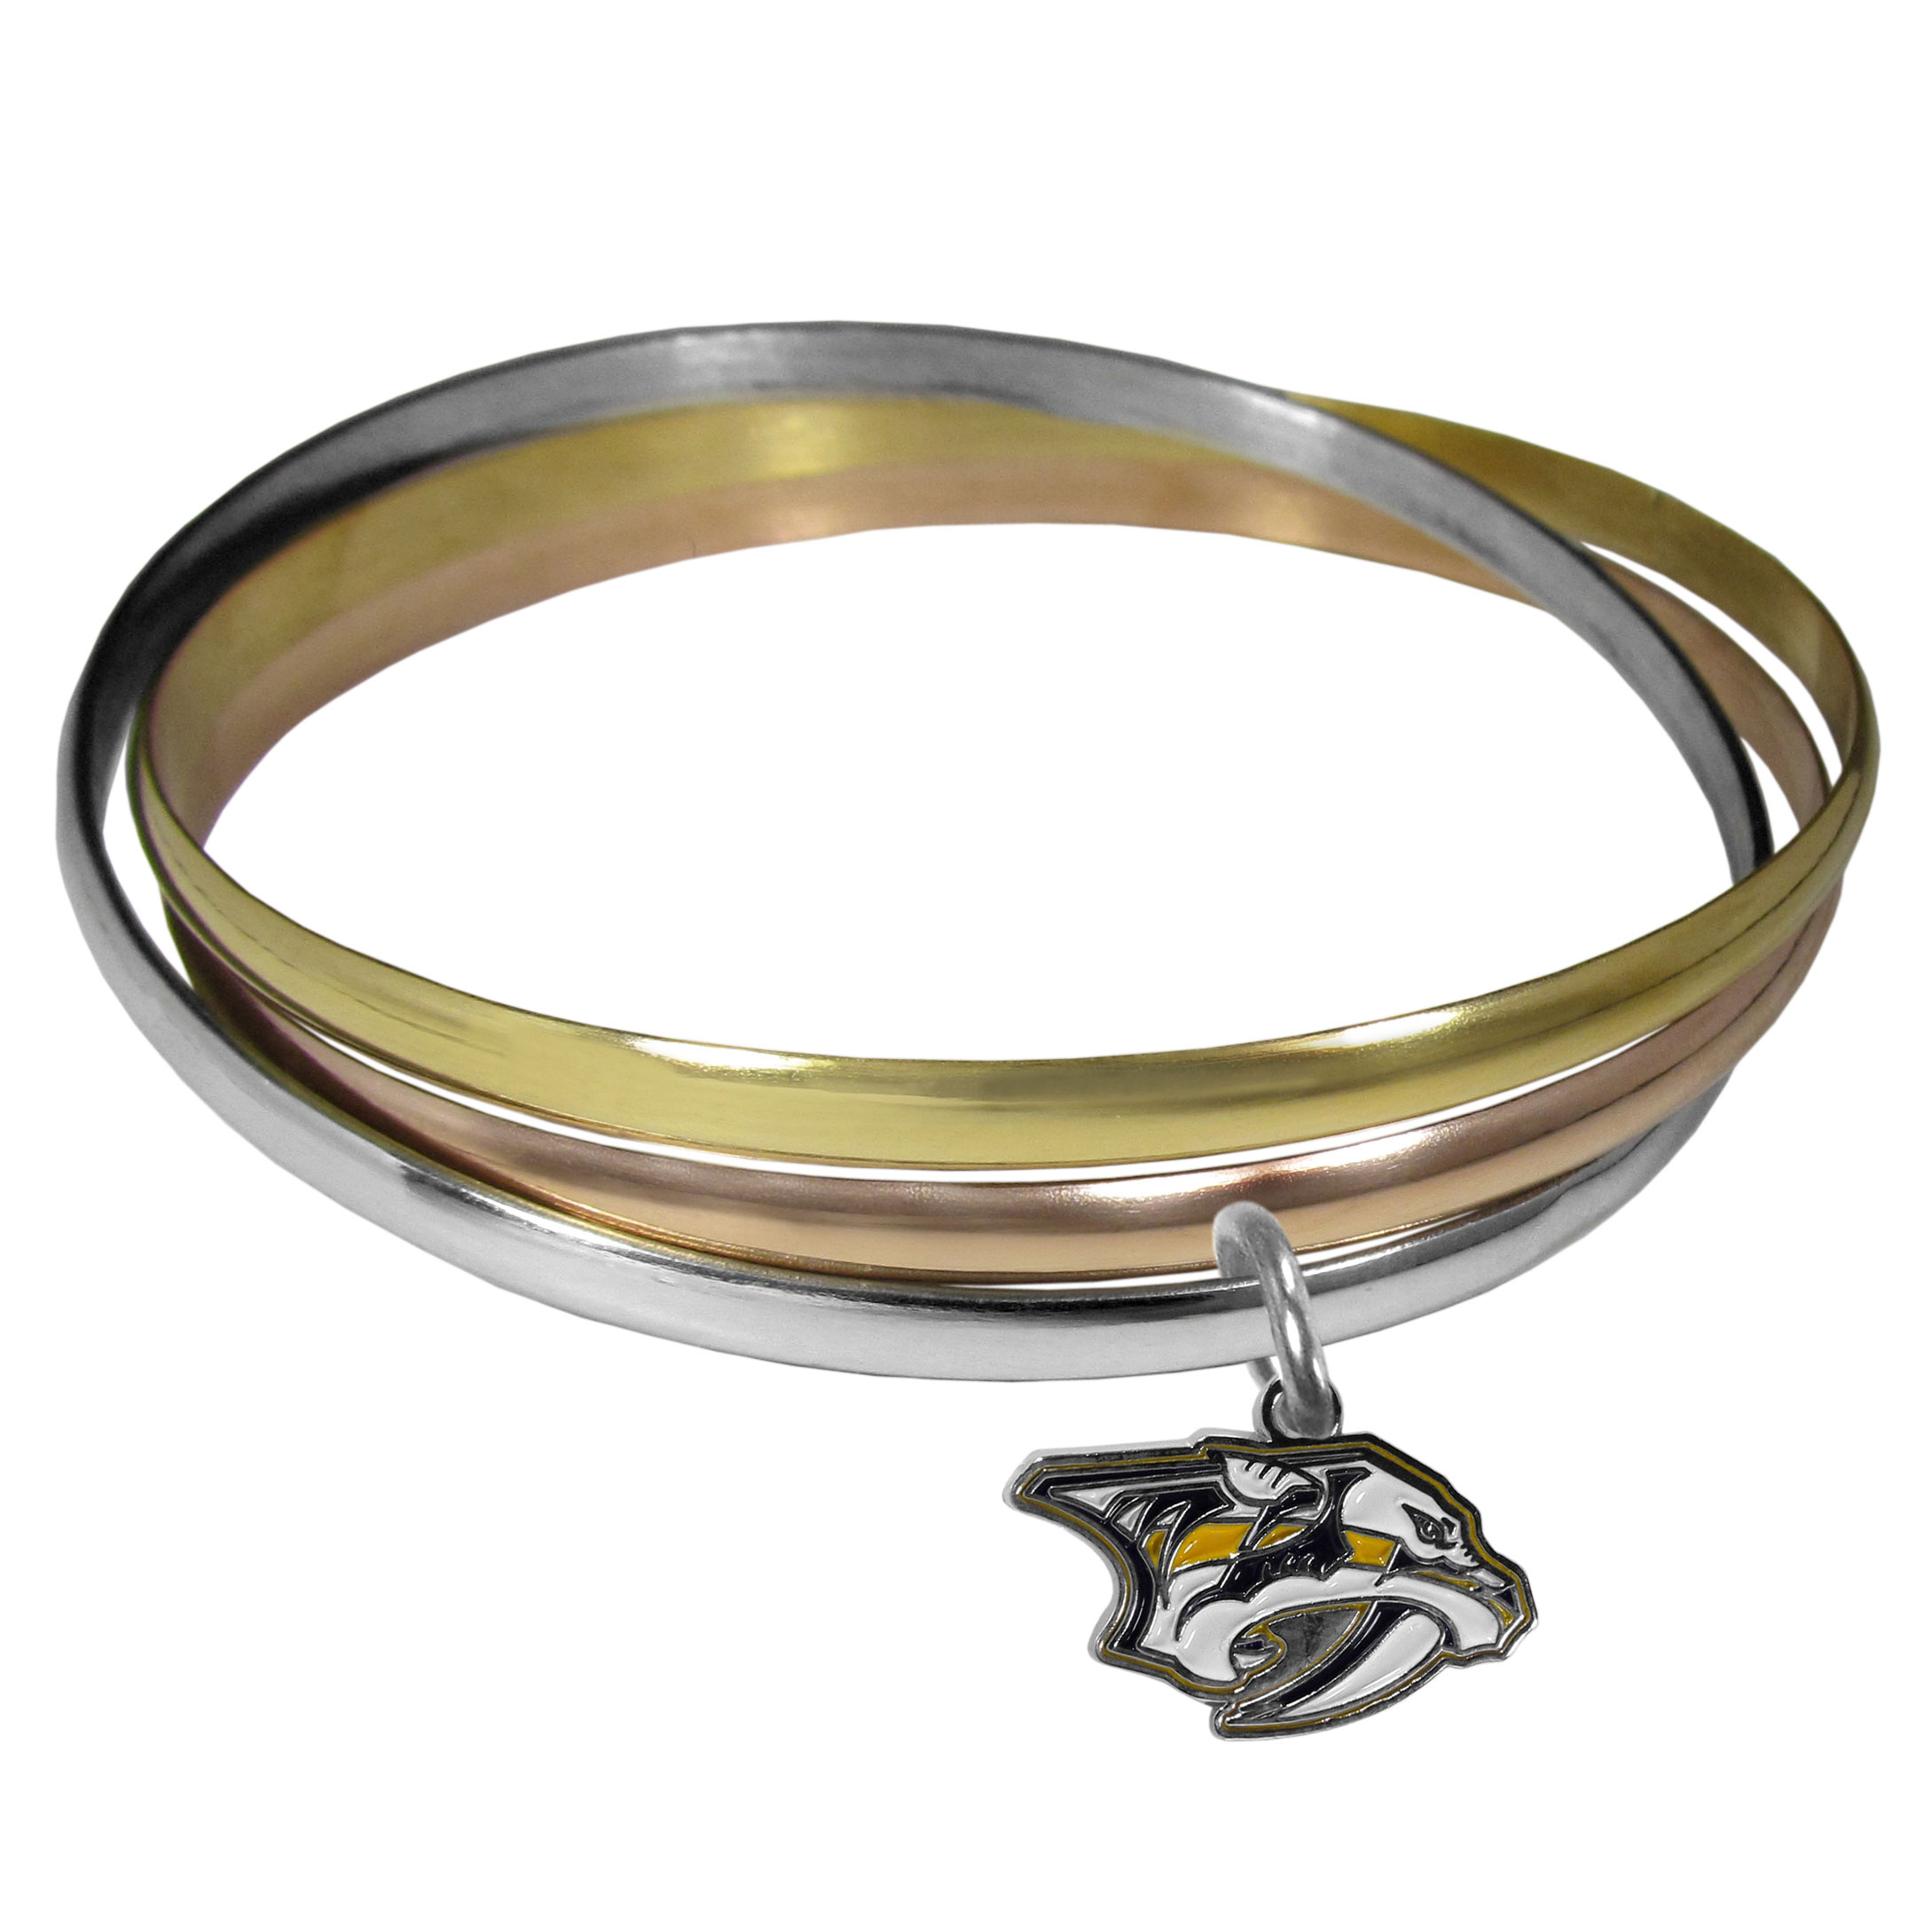 Nashville Predators® Tri-color Bangle Bracelet - These beautiful bangles come in a interlocking style and feature a fully cast Nashville Predators® charm with enameled team colors. The bracelet has a silver toned bangle, gold tone bangle and brass toned bangle.